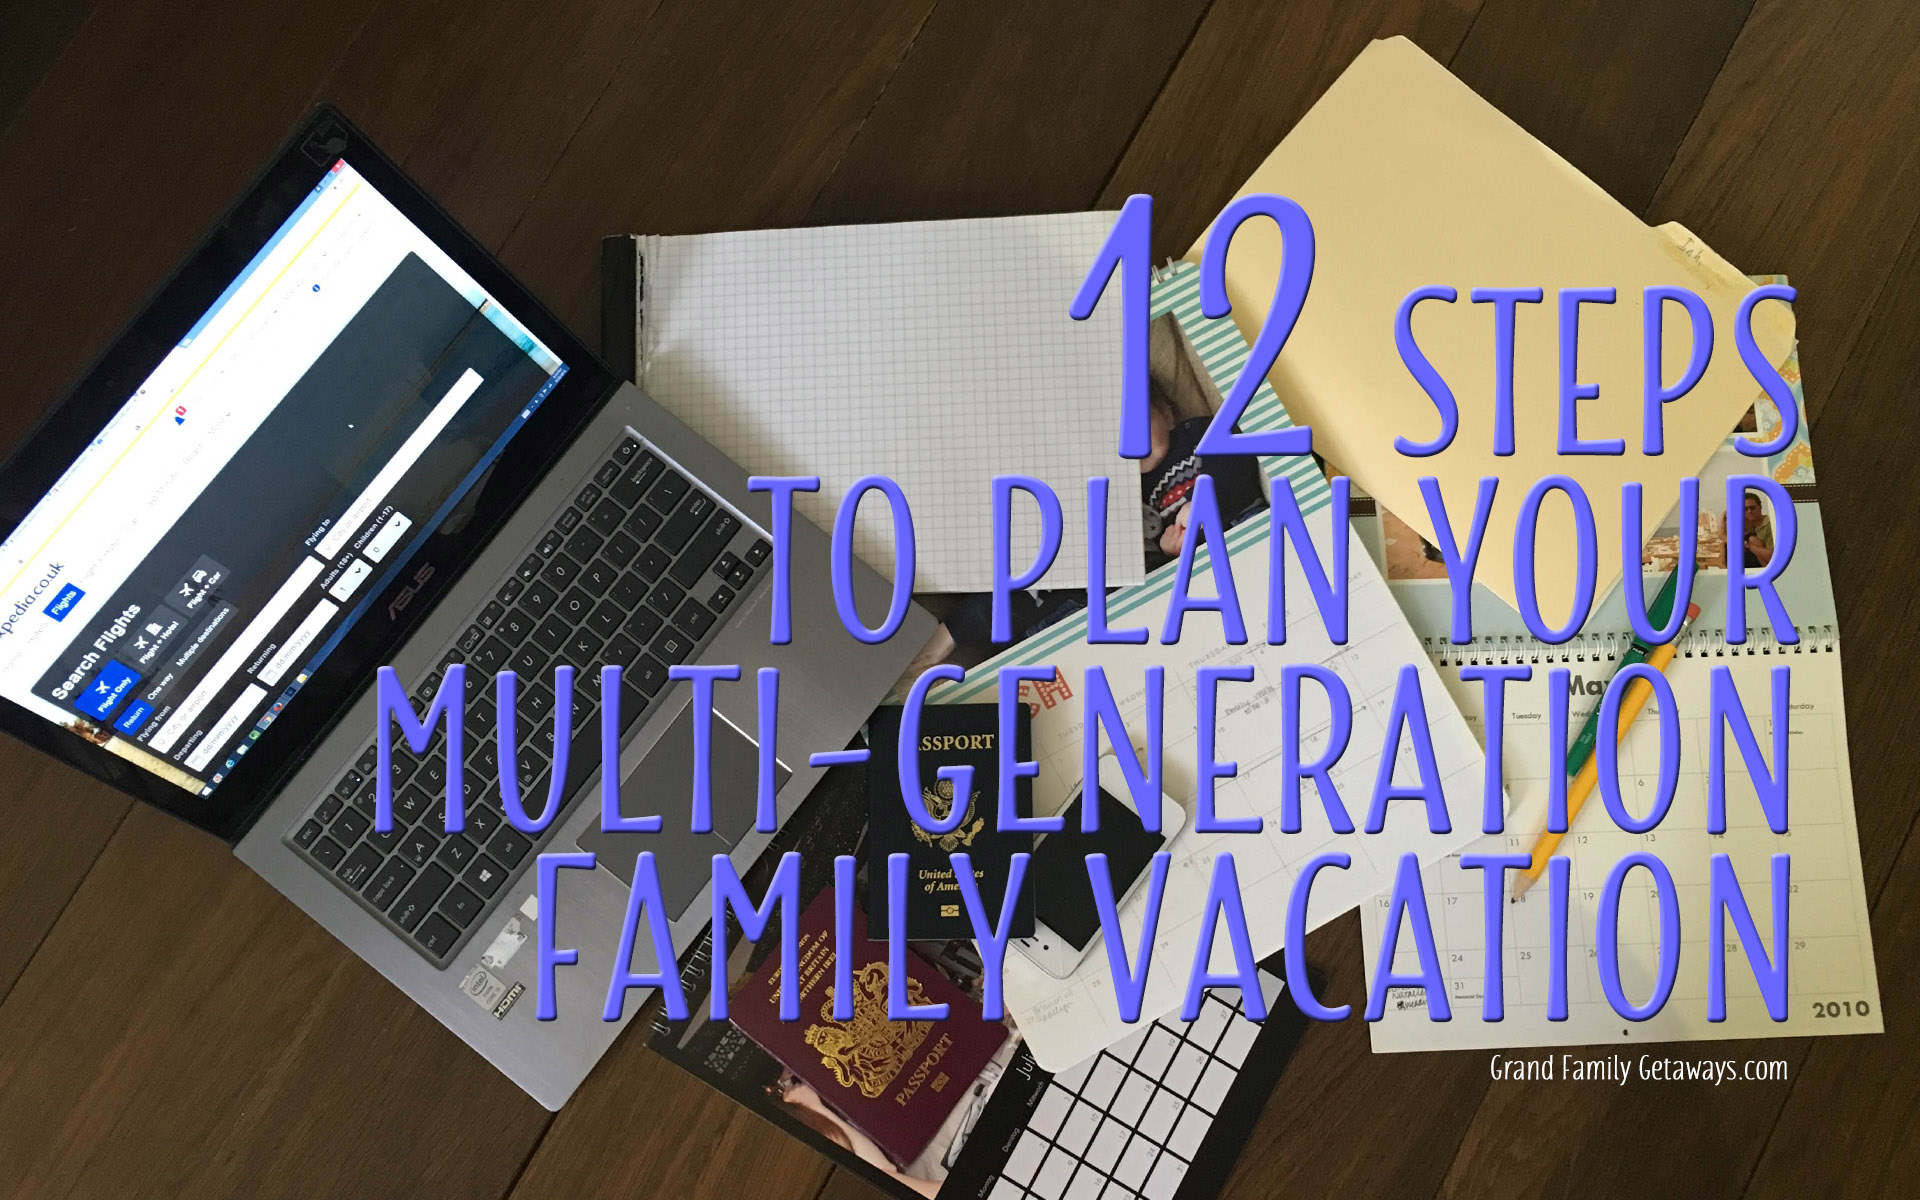 Grand Family Getaways - 12 Steps to Plan your Multi-generation family vacation